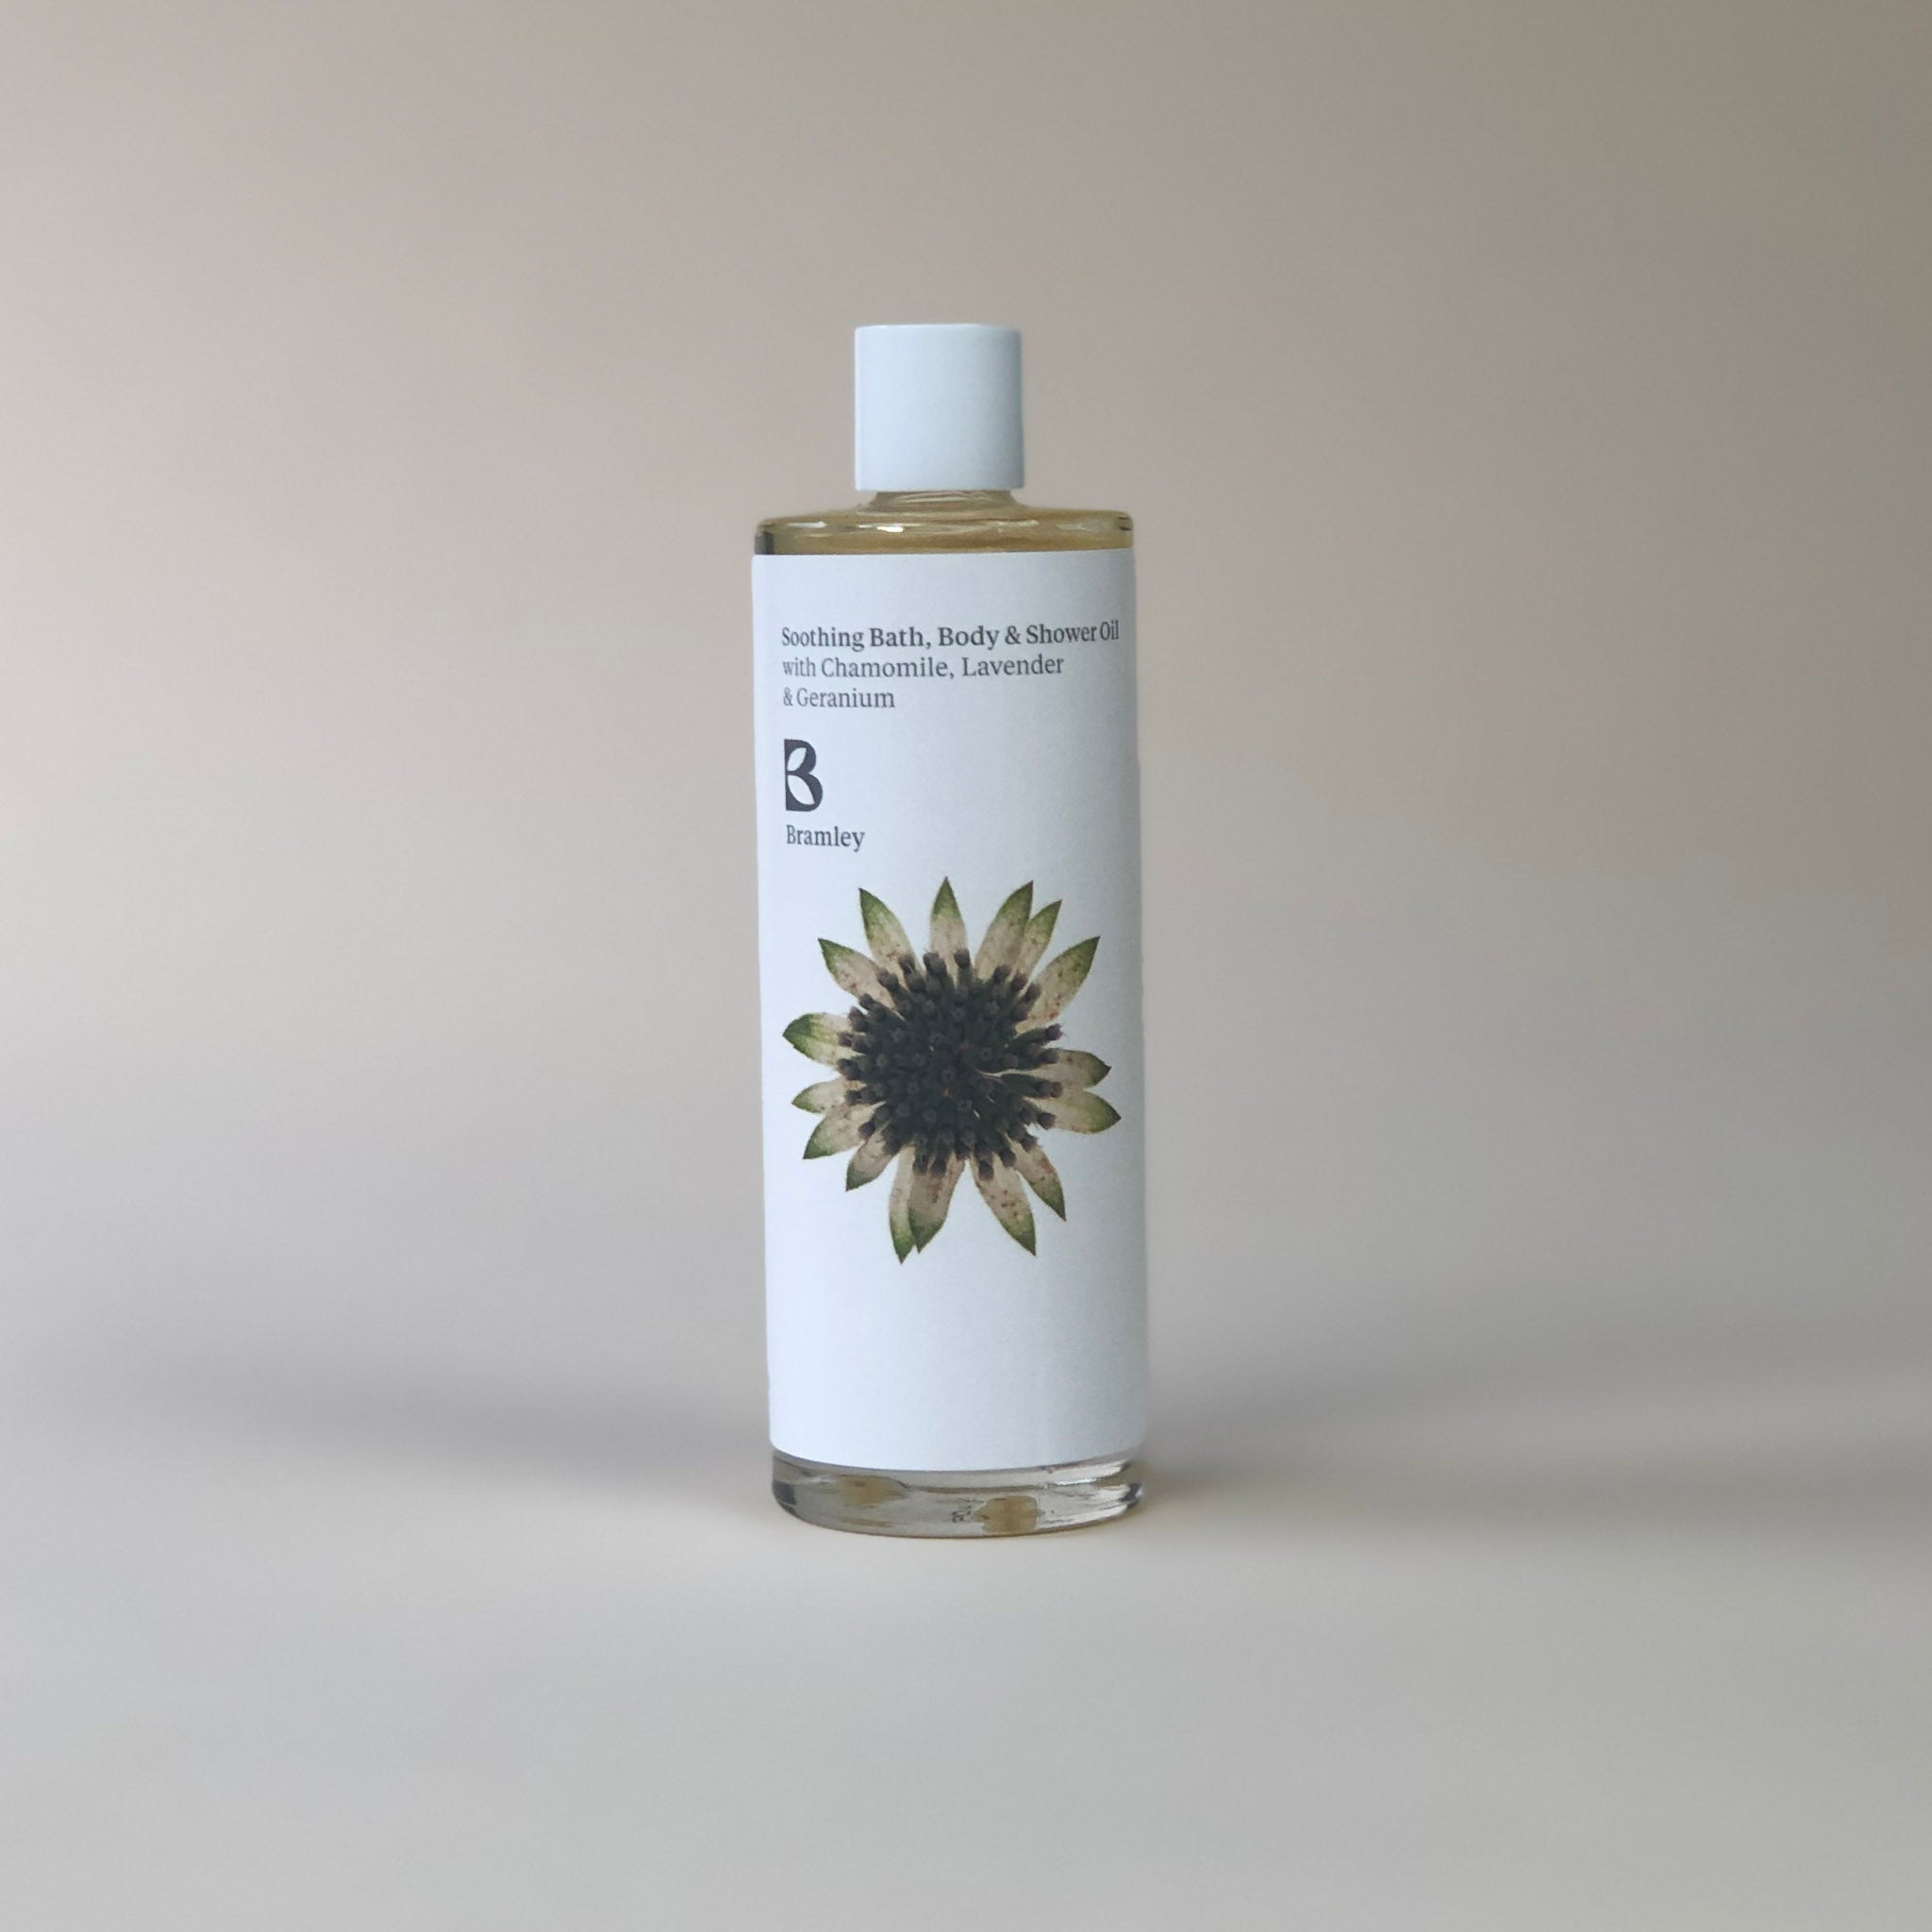 Bramley Soothing Body & Shower Oil